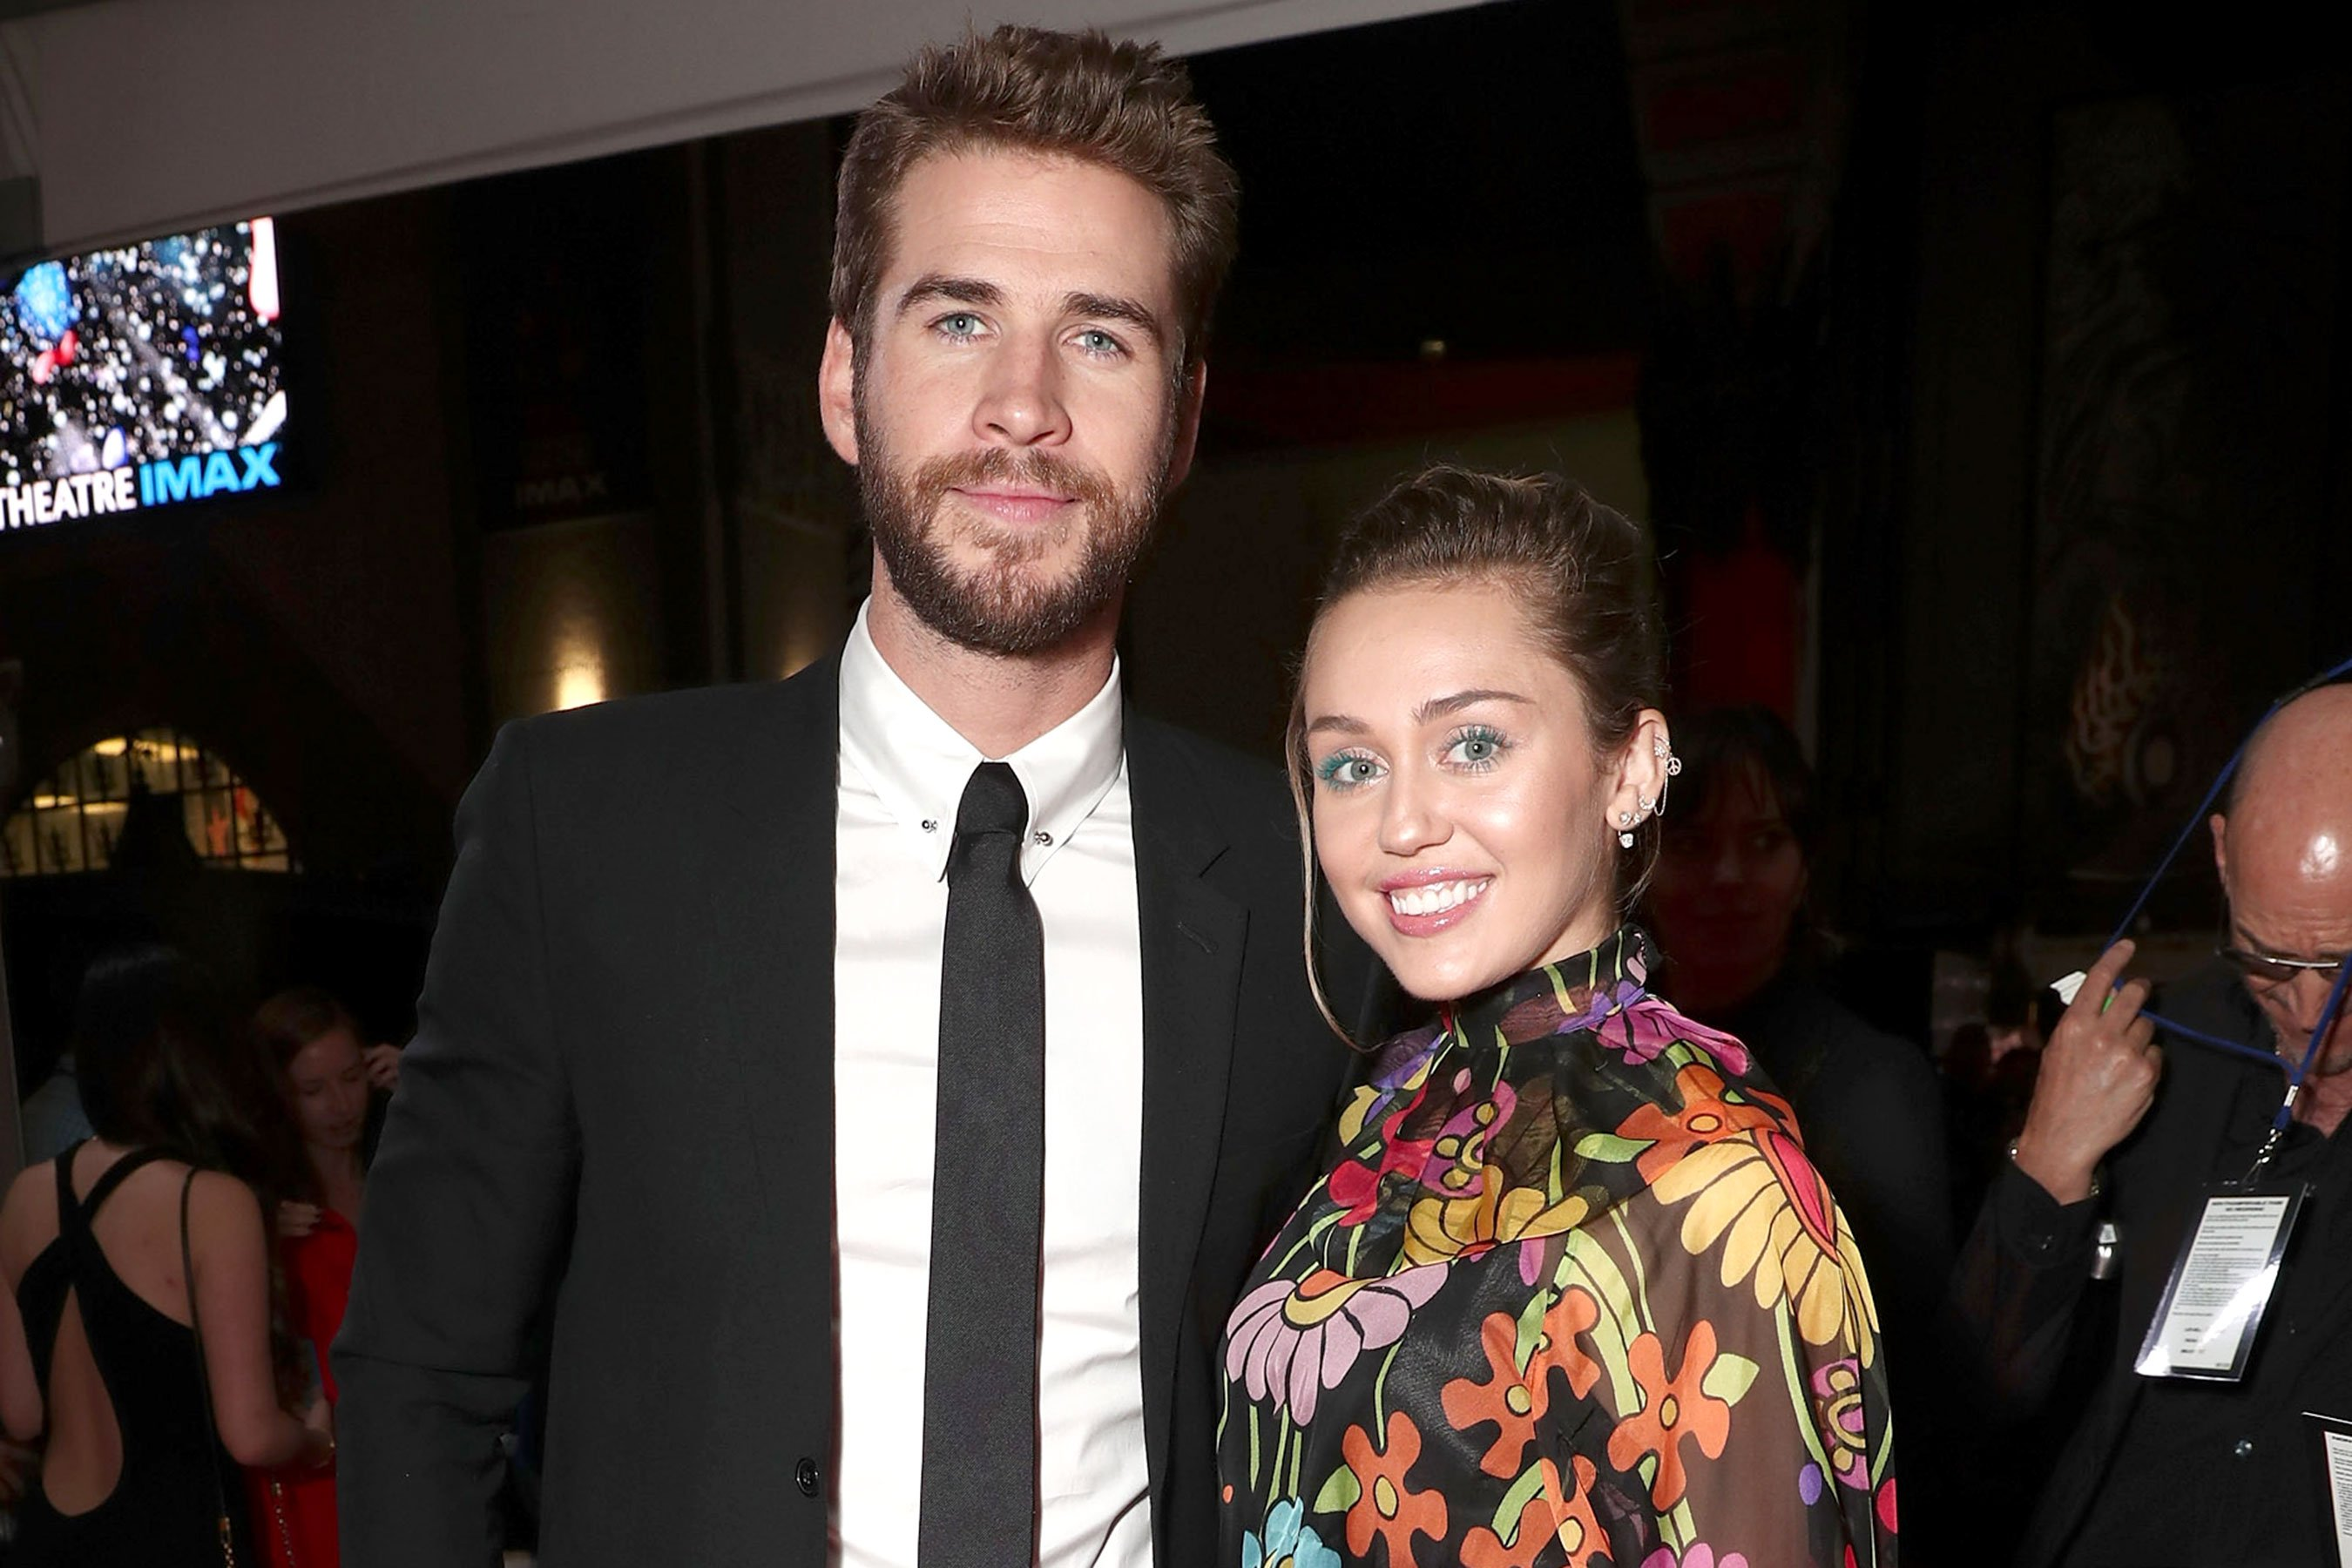 Miley Cyrus shares birthday message for Liam Hemsworth